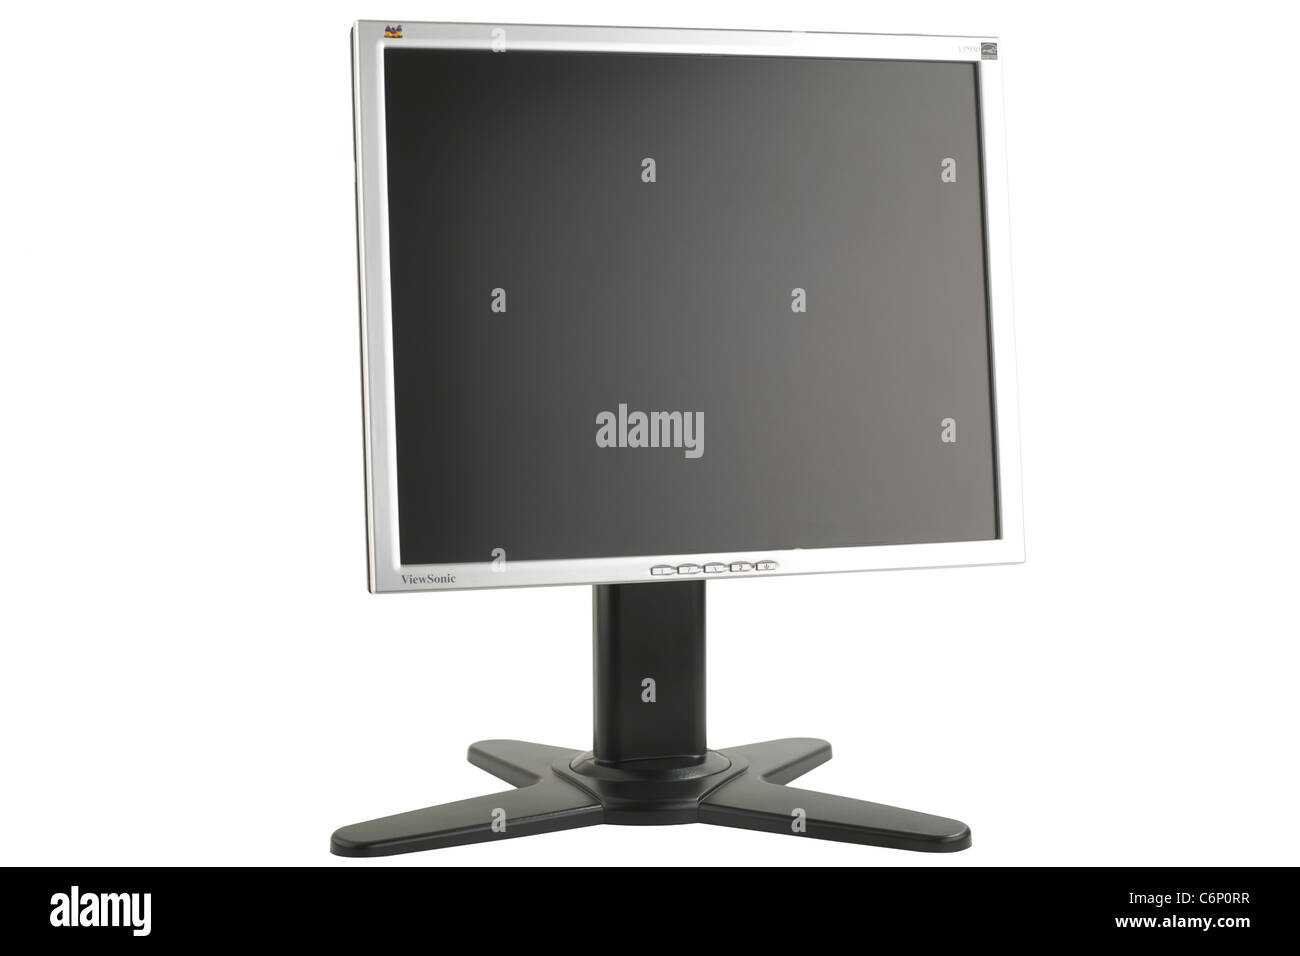 Rotatable Viewsonic LCD screen on a raised stand - Stock Image